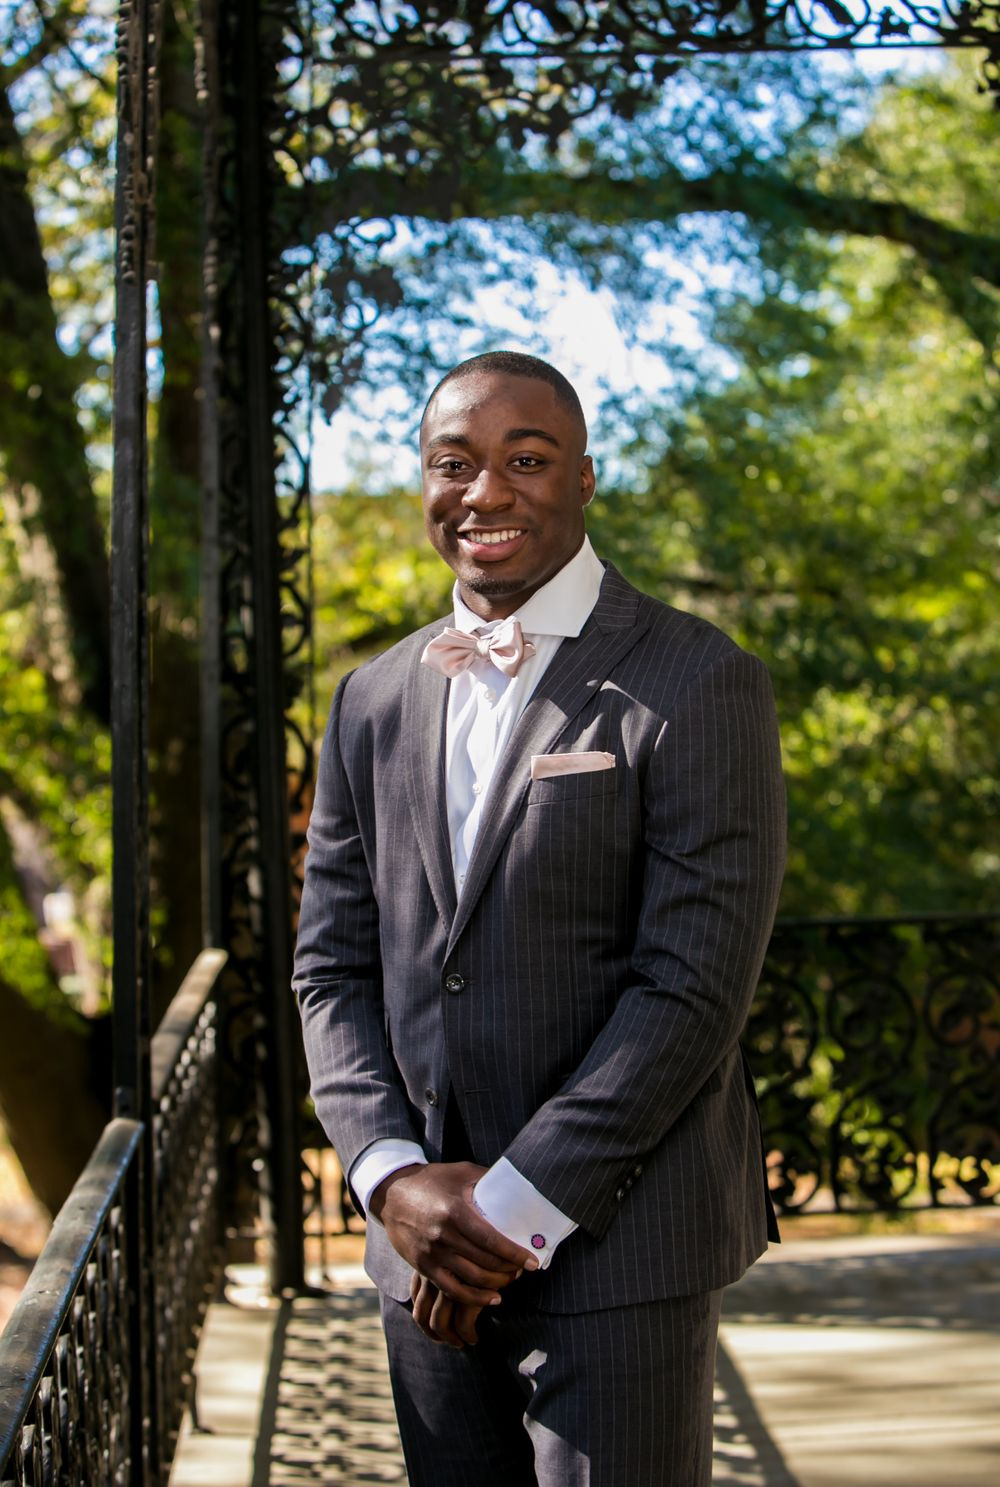 Groom portrait of Marcus Lattimore before his wedding at the Lace House in Columbia, SC. Photo by Jeff Blake